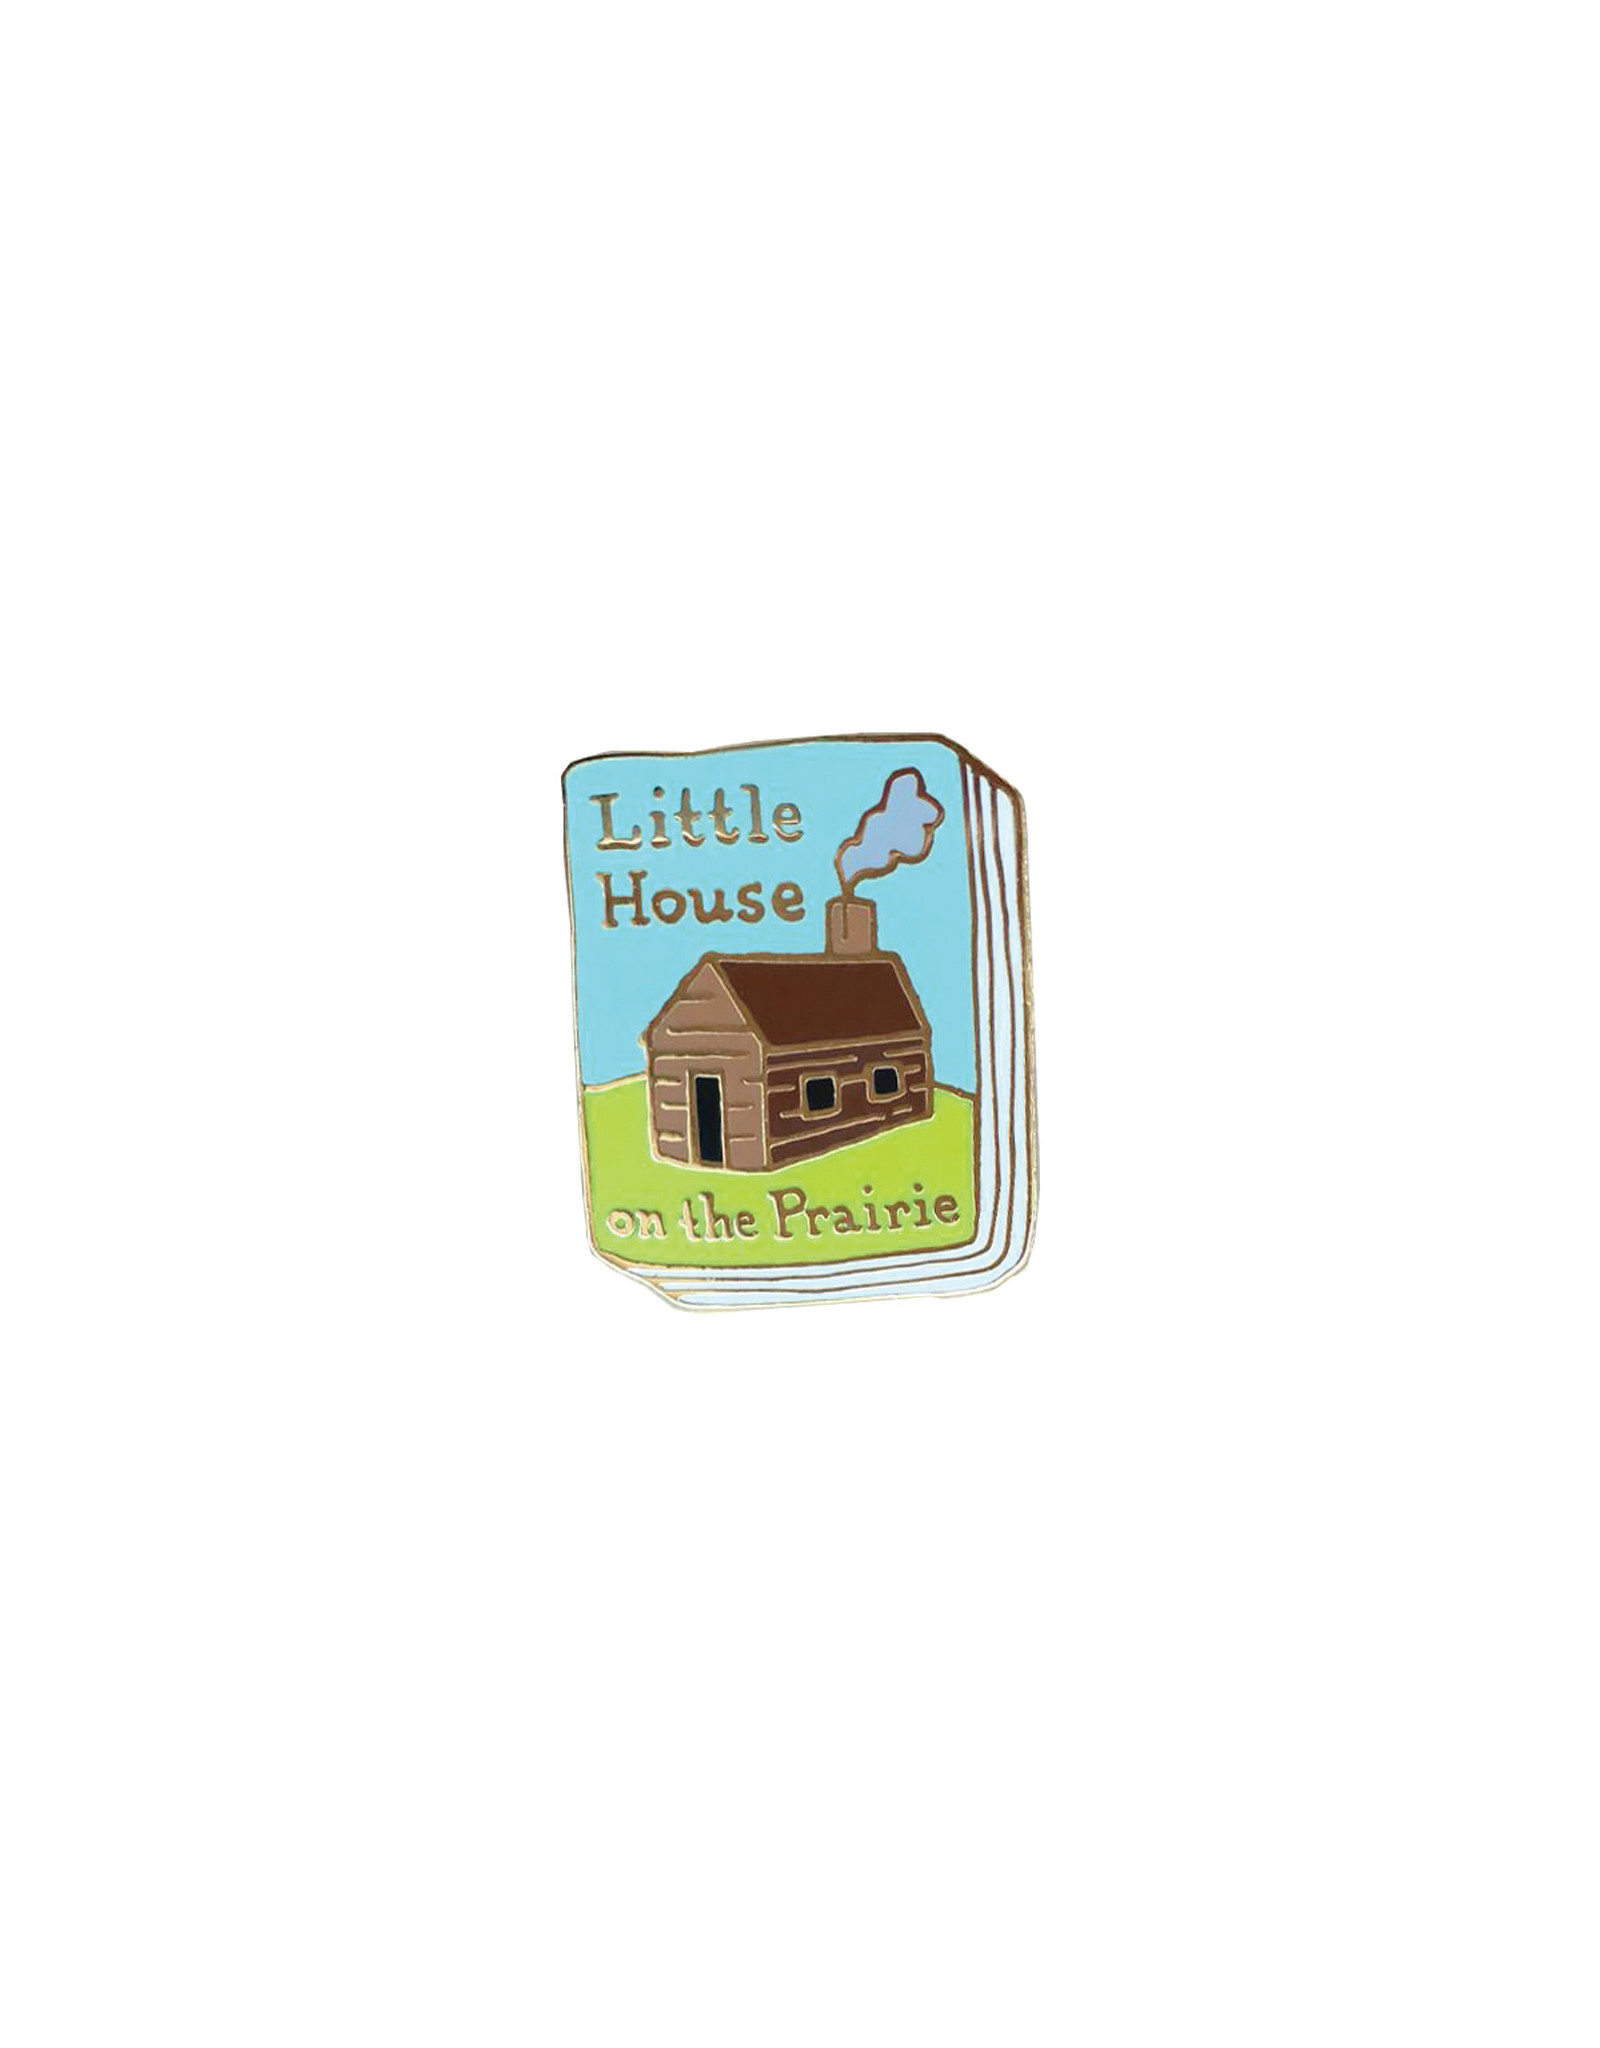 Ideal Bookshelf Book Pin: Little House on the Prairie